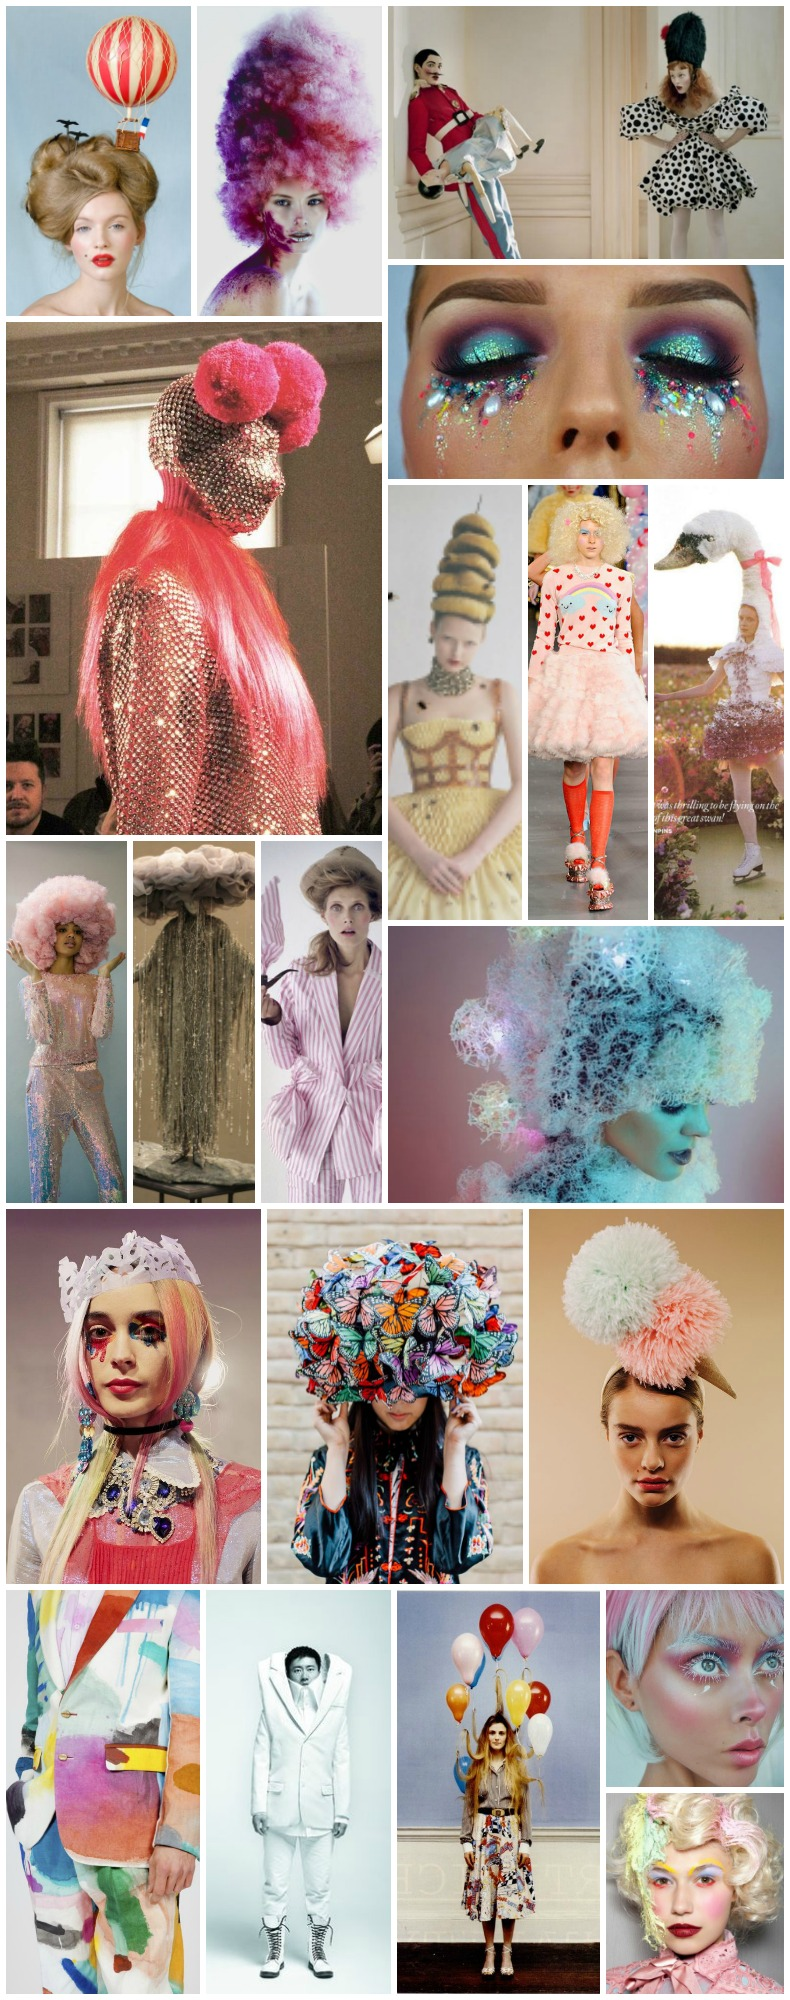 """Shambala Cloud Cuckoo Land fancy dress theme inspiration - surrealist fairytale festival costume mood board. """"Cloud cuckoo land refers to a state of absurdly over-optimistic fantasy or an unrealistically idealistic state where everything is perfect"""" """"Think dancing cupcakes,candy floss cloudsand pure, sugar coated escapism. A month of Sundays at the end of the rainbow, where pigs fly high past blue moons.An all singing, all dancing adventure into utopia."""""""